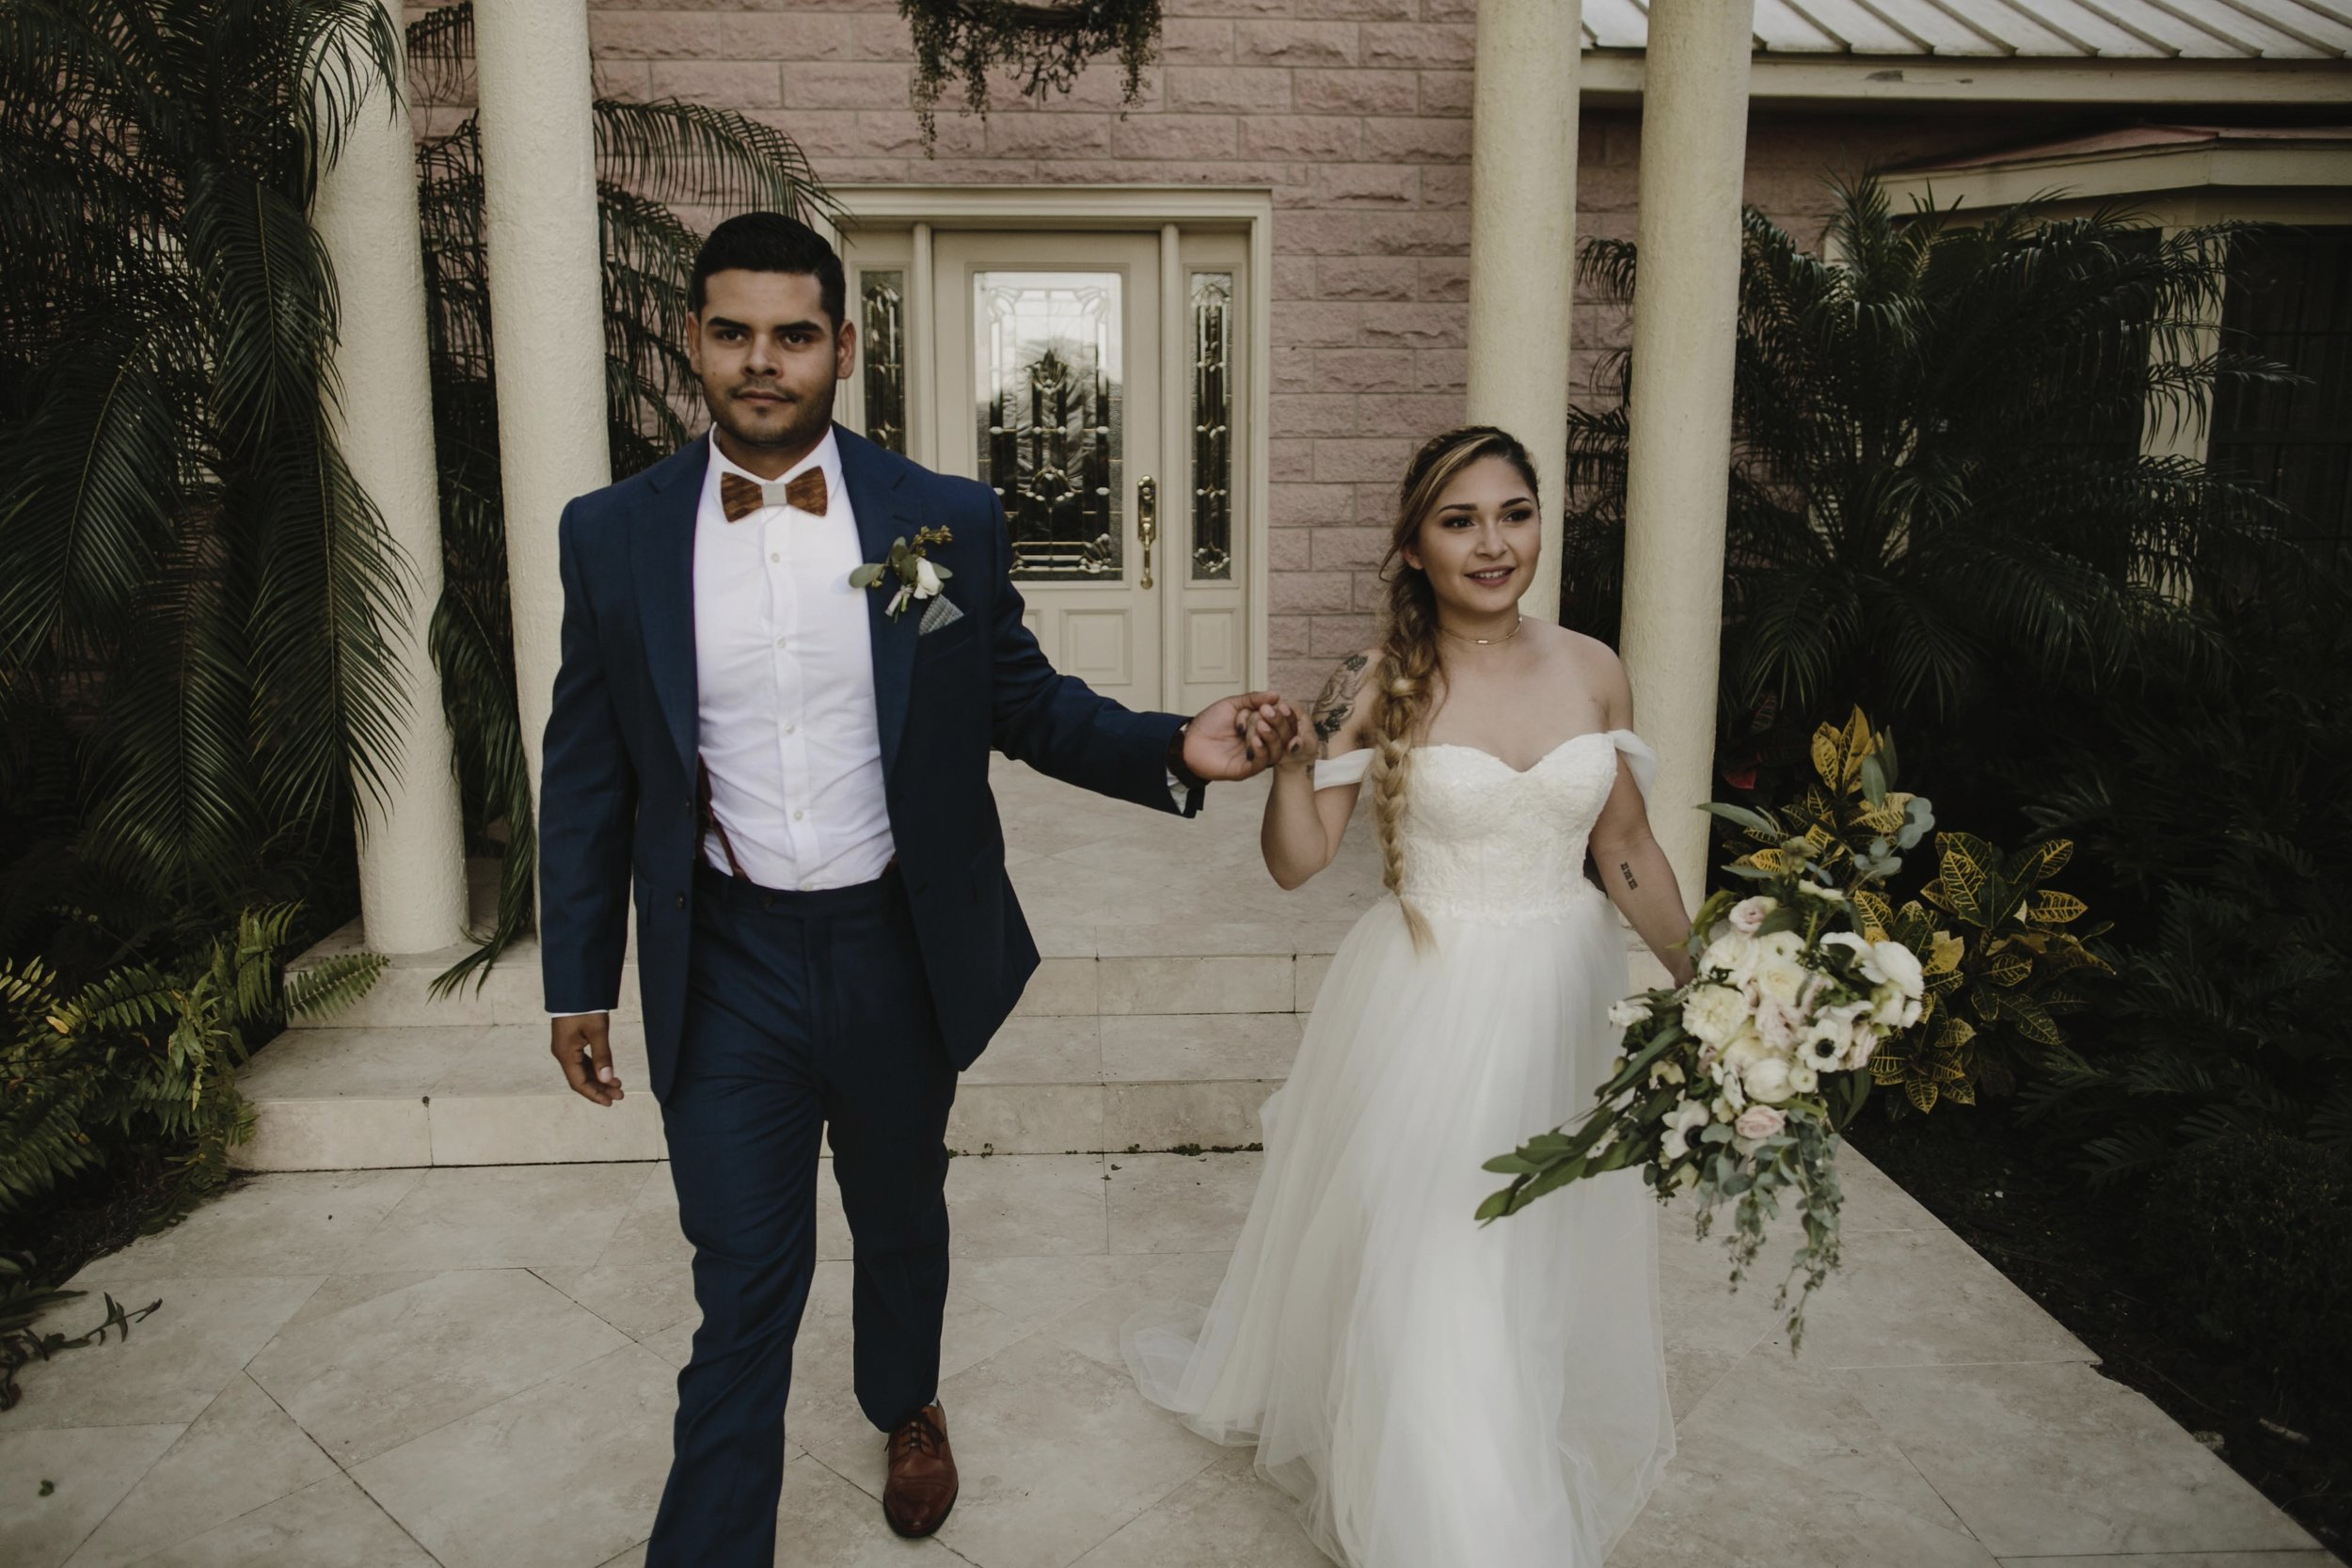 alfonso_flores_destination_wedding_photography_rancho_la_pergola_brownsville_texas47.jpg